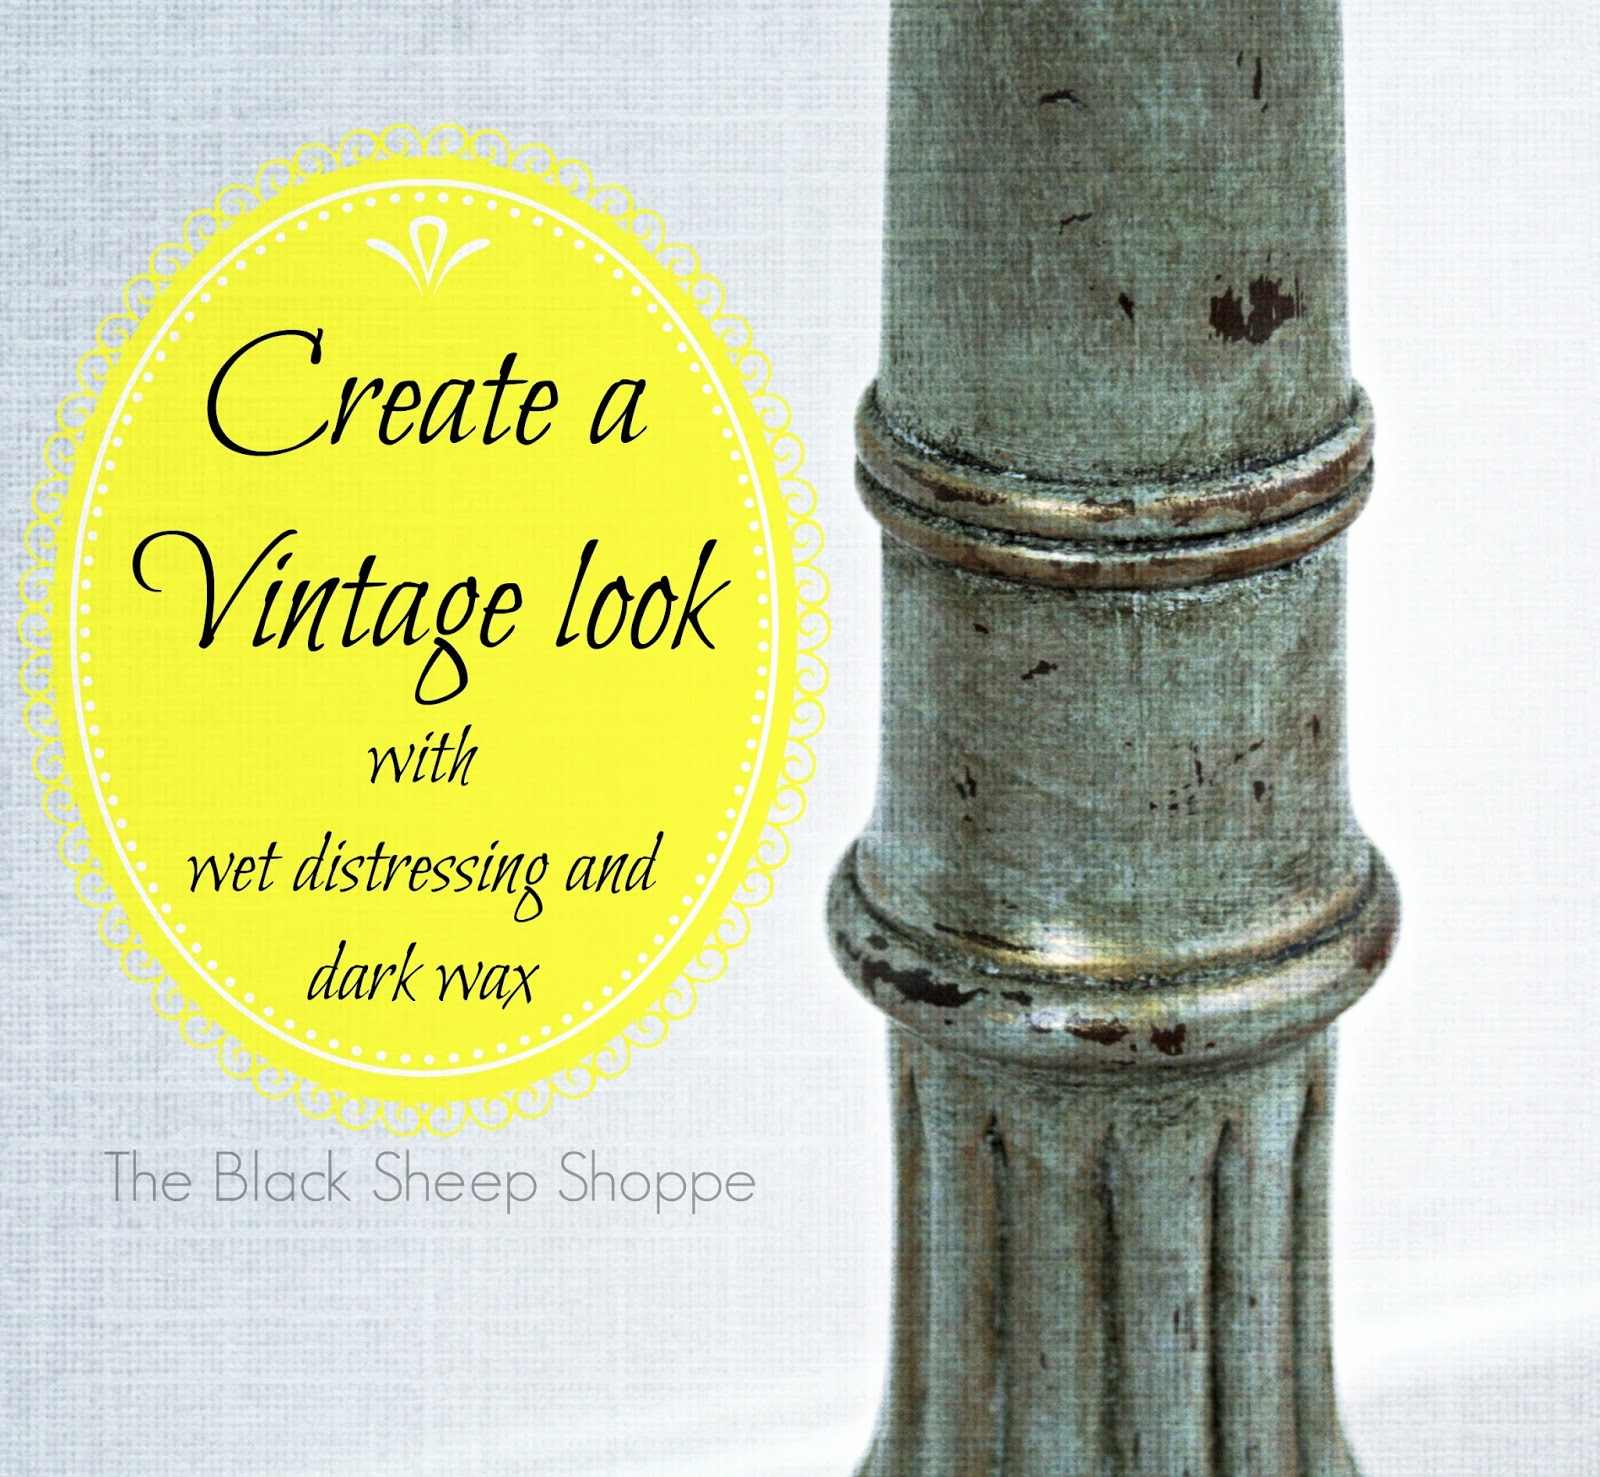 Create a vintage look with wet distressing and dark wax.